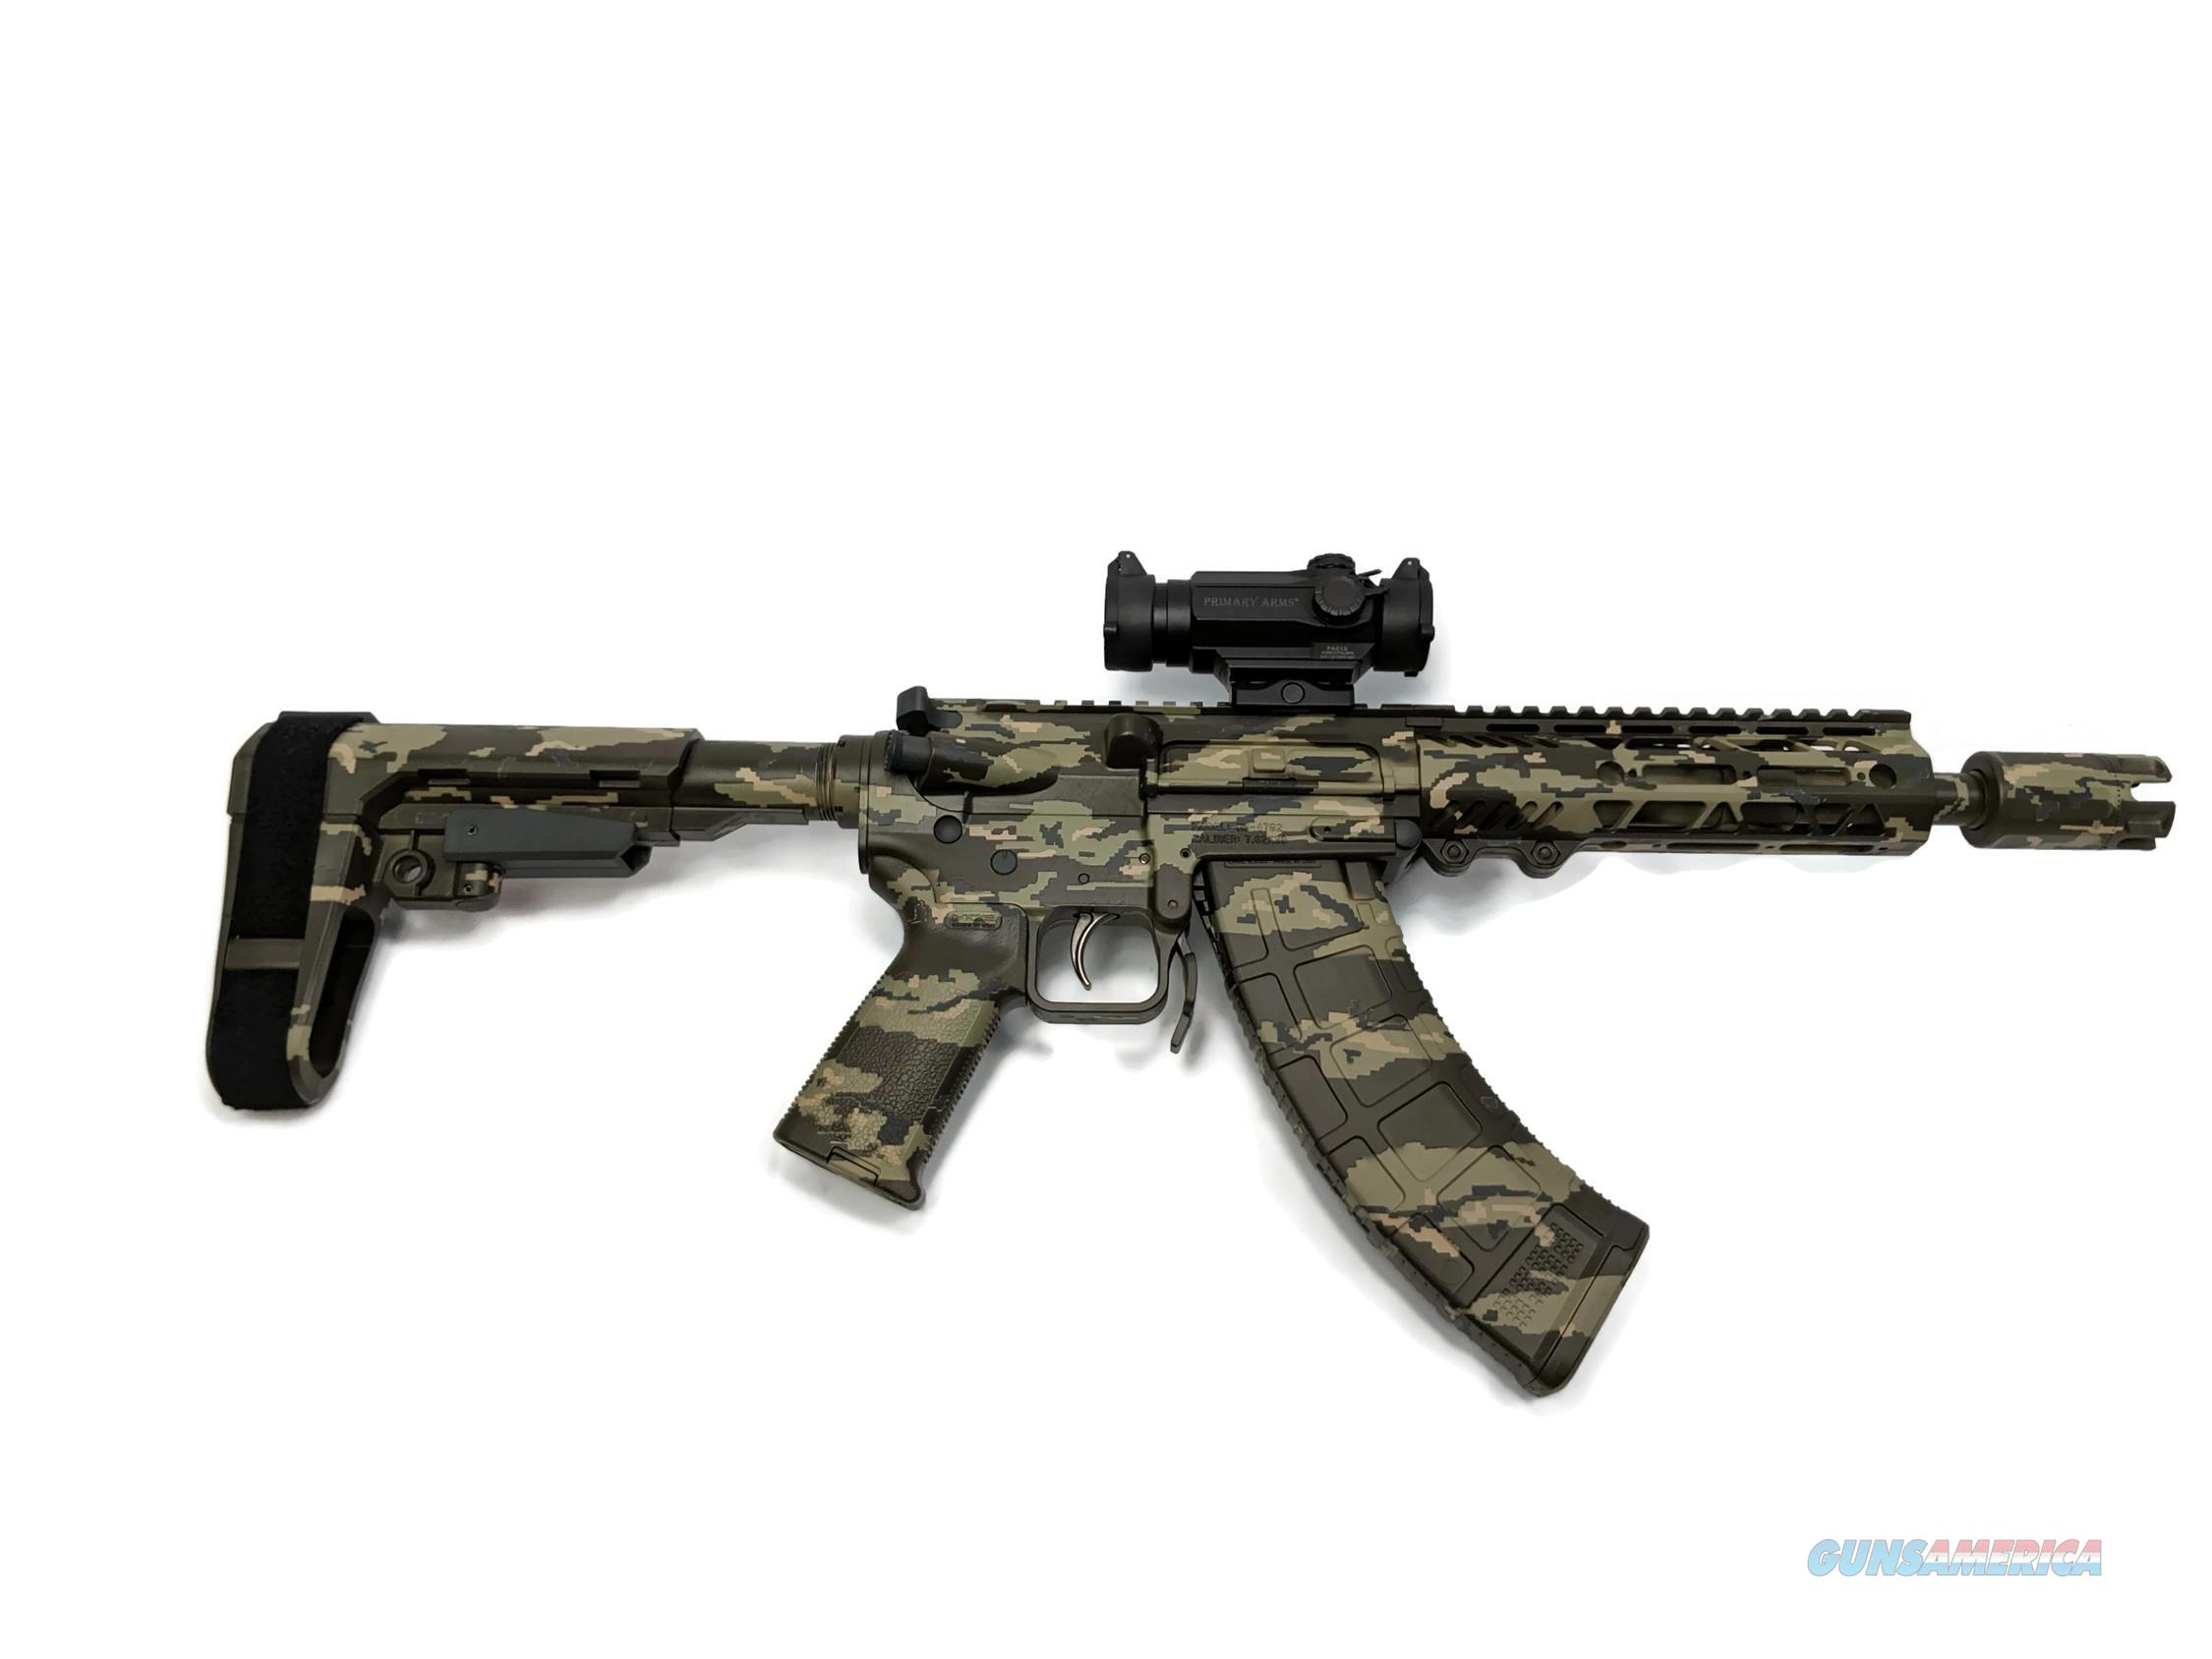 EFR Custom PSA KS-47 pistol with Brace On sale till Dec 21 with free shipping  Guns > Rifles > AR-15 Rifles - Small Manufacturers > Complete Rifle